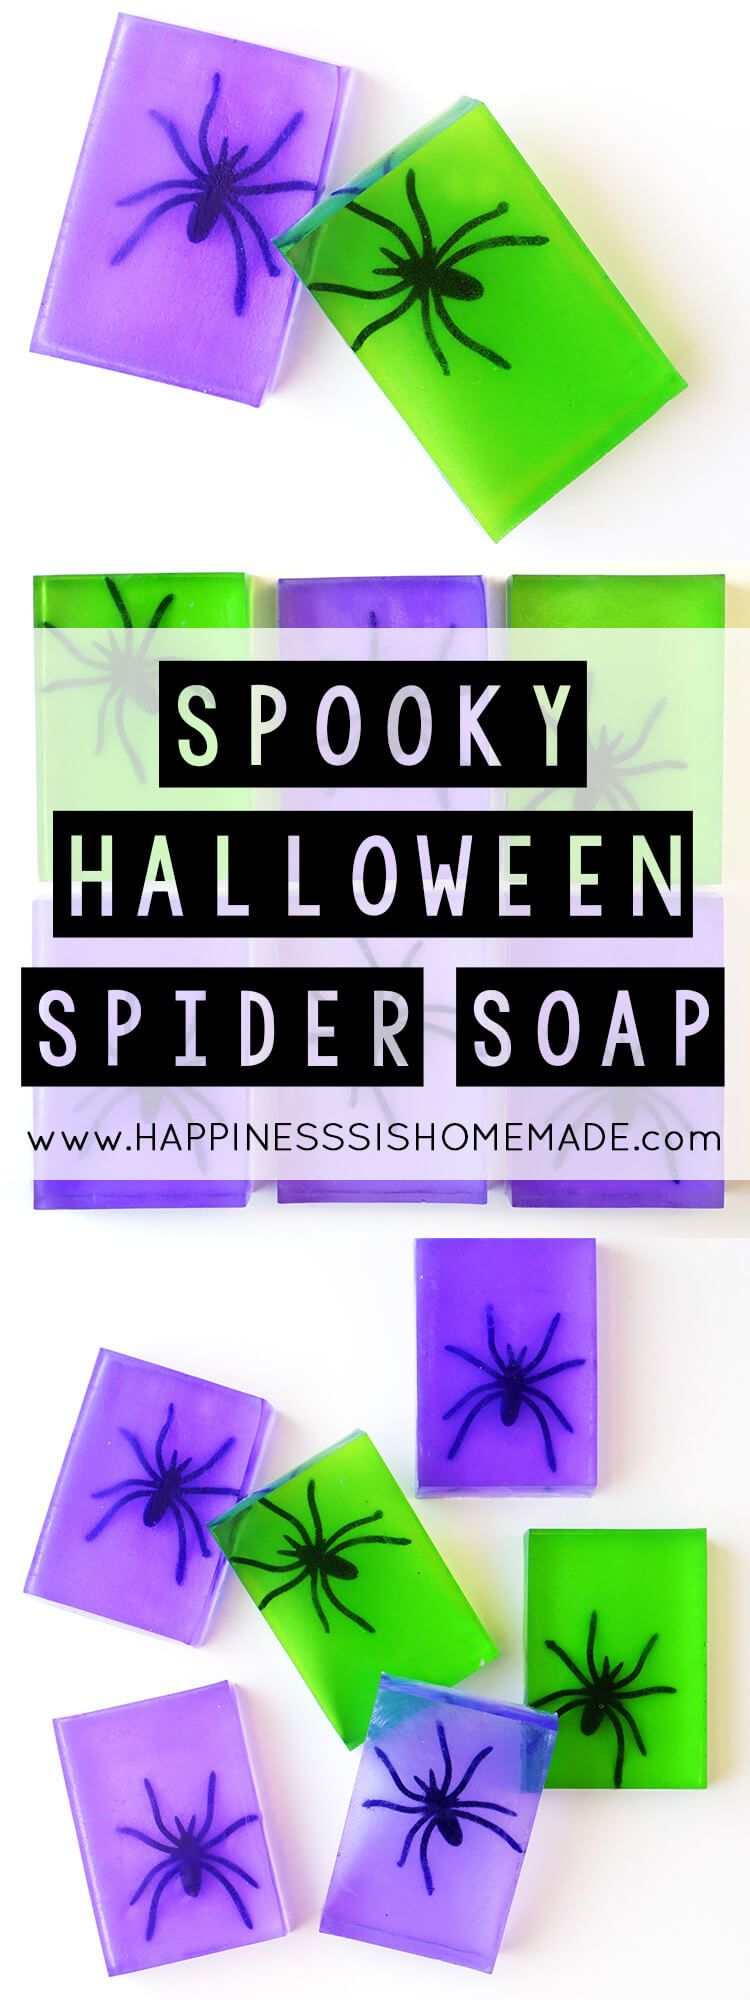 Spooky Spider Soap Halloween Craft - These spooky spider soaps are a fun and easy Halloween craft that the whole family will enjoy making together! Super quick to make – you can whip up an entire batch in about 10 minutes!